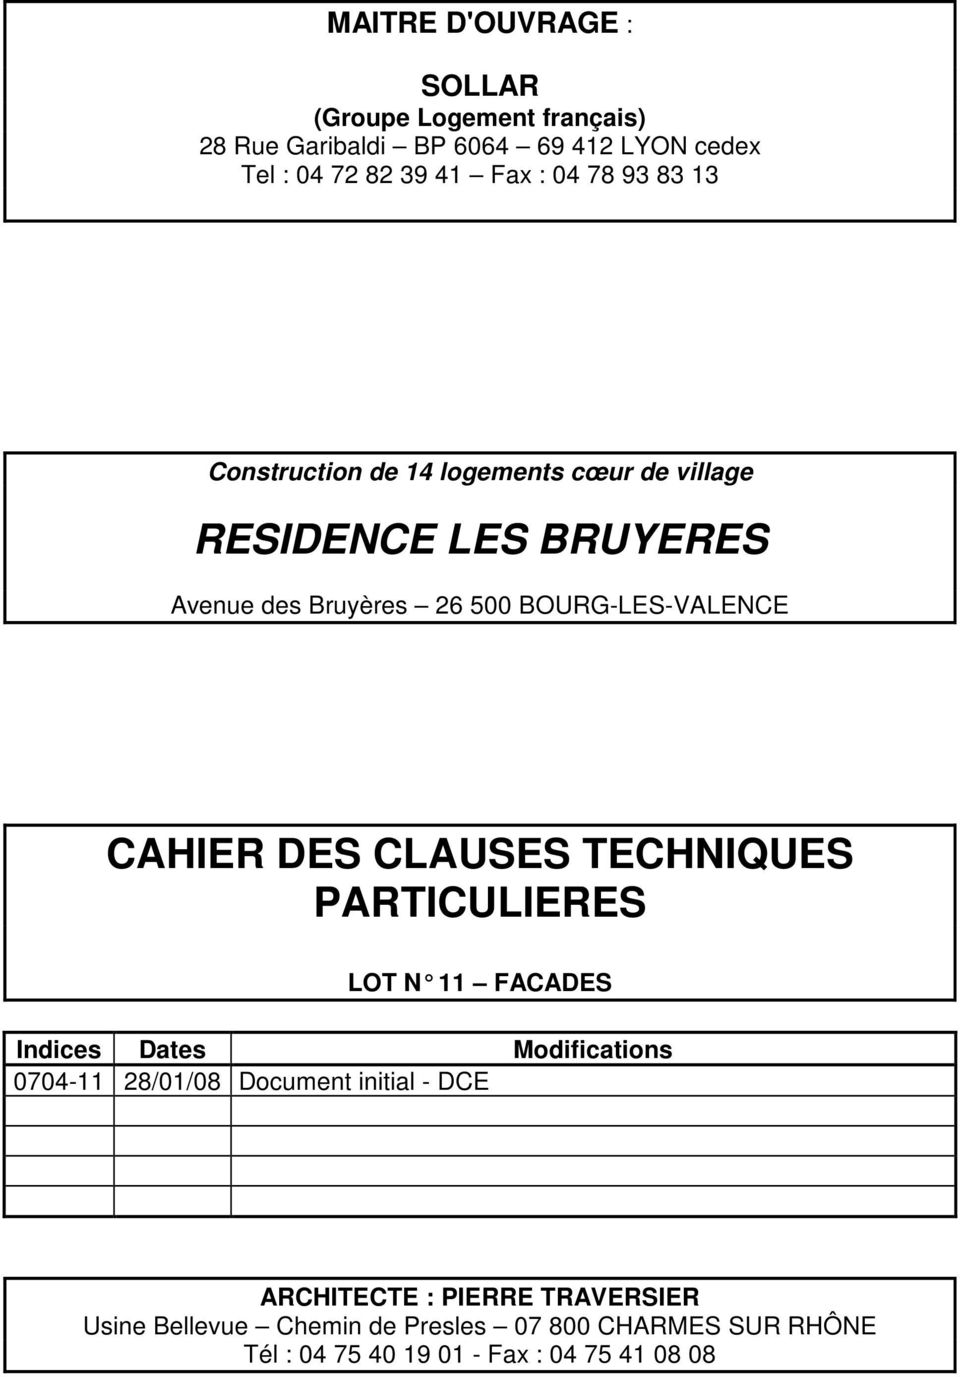 CAHIER DES CLAUSES TECHNIQUES PARTICULIERES LOT N 11 FACADES Indices Dates Modifications 0704-11 28/01/08 Document initial -